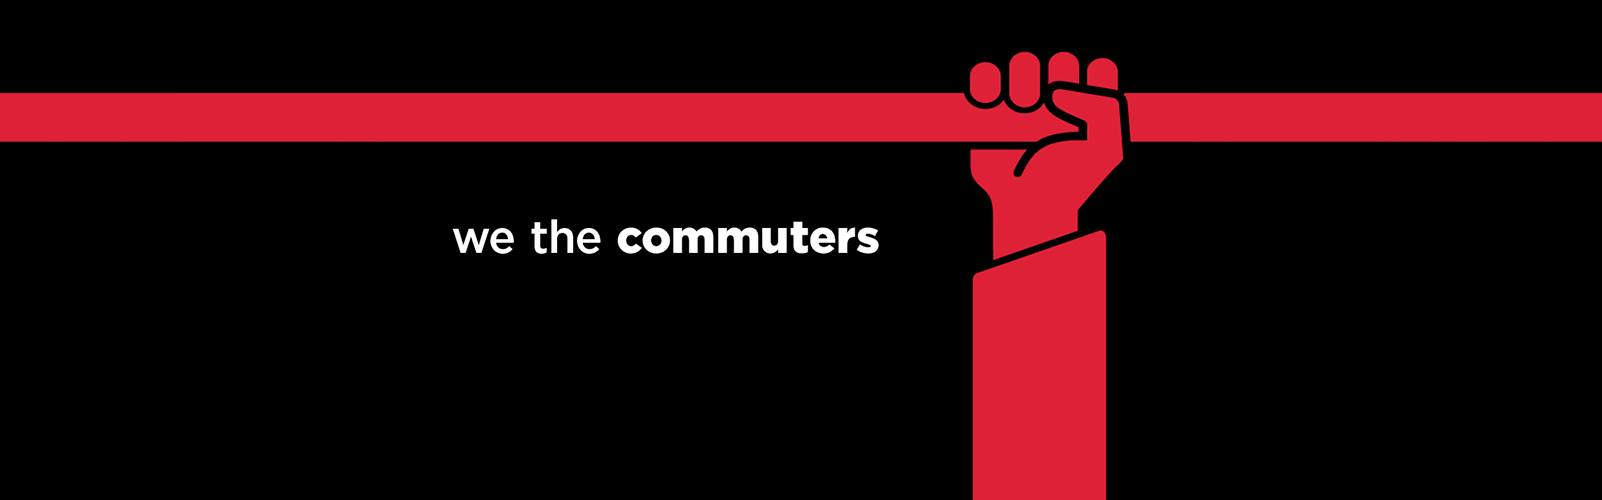 We the Commuters